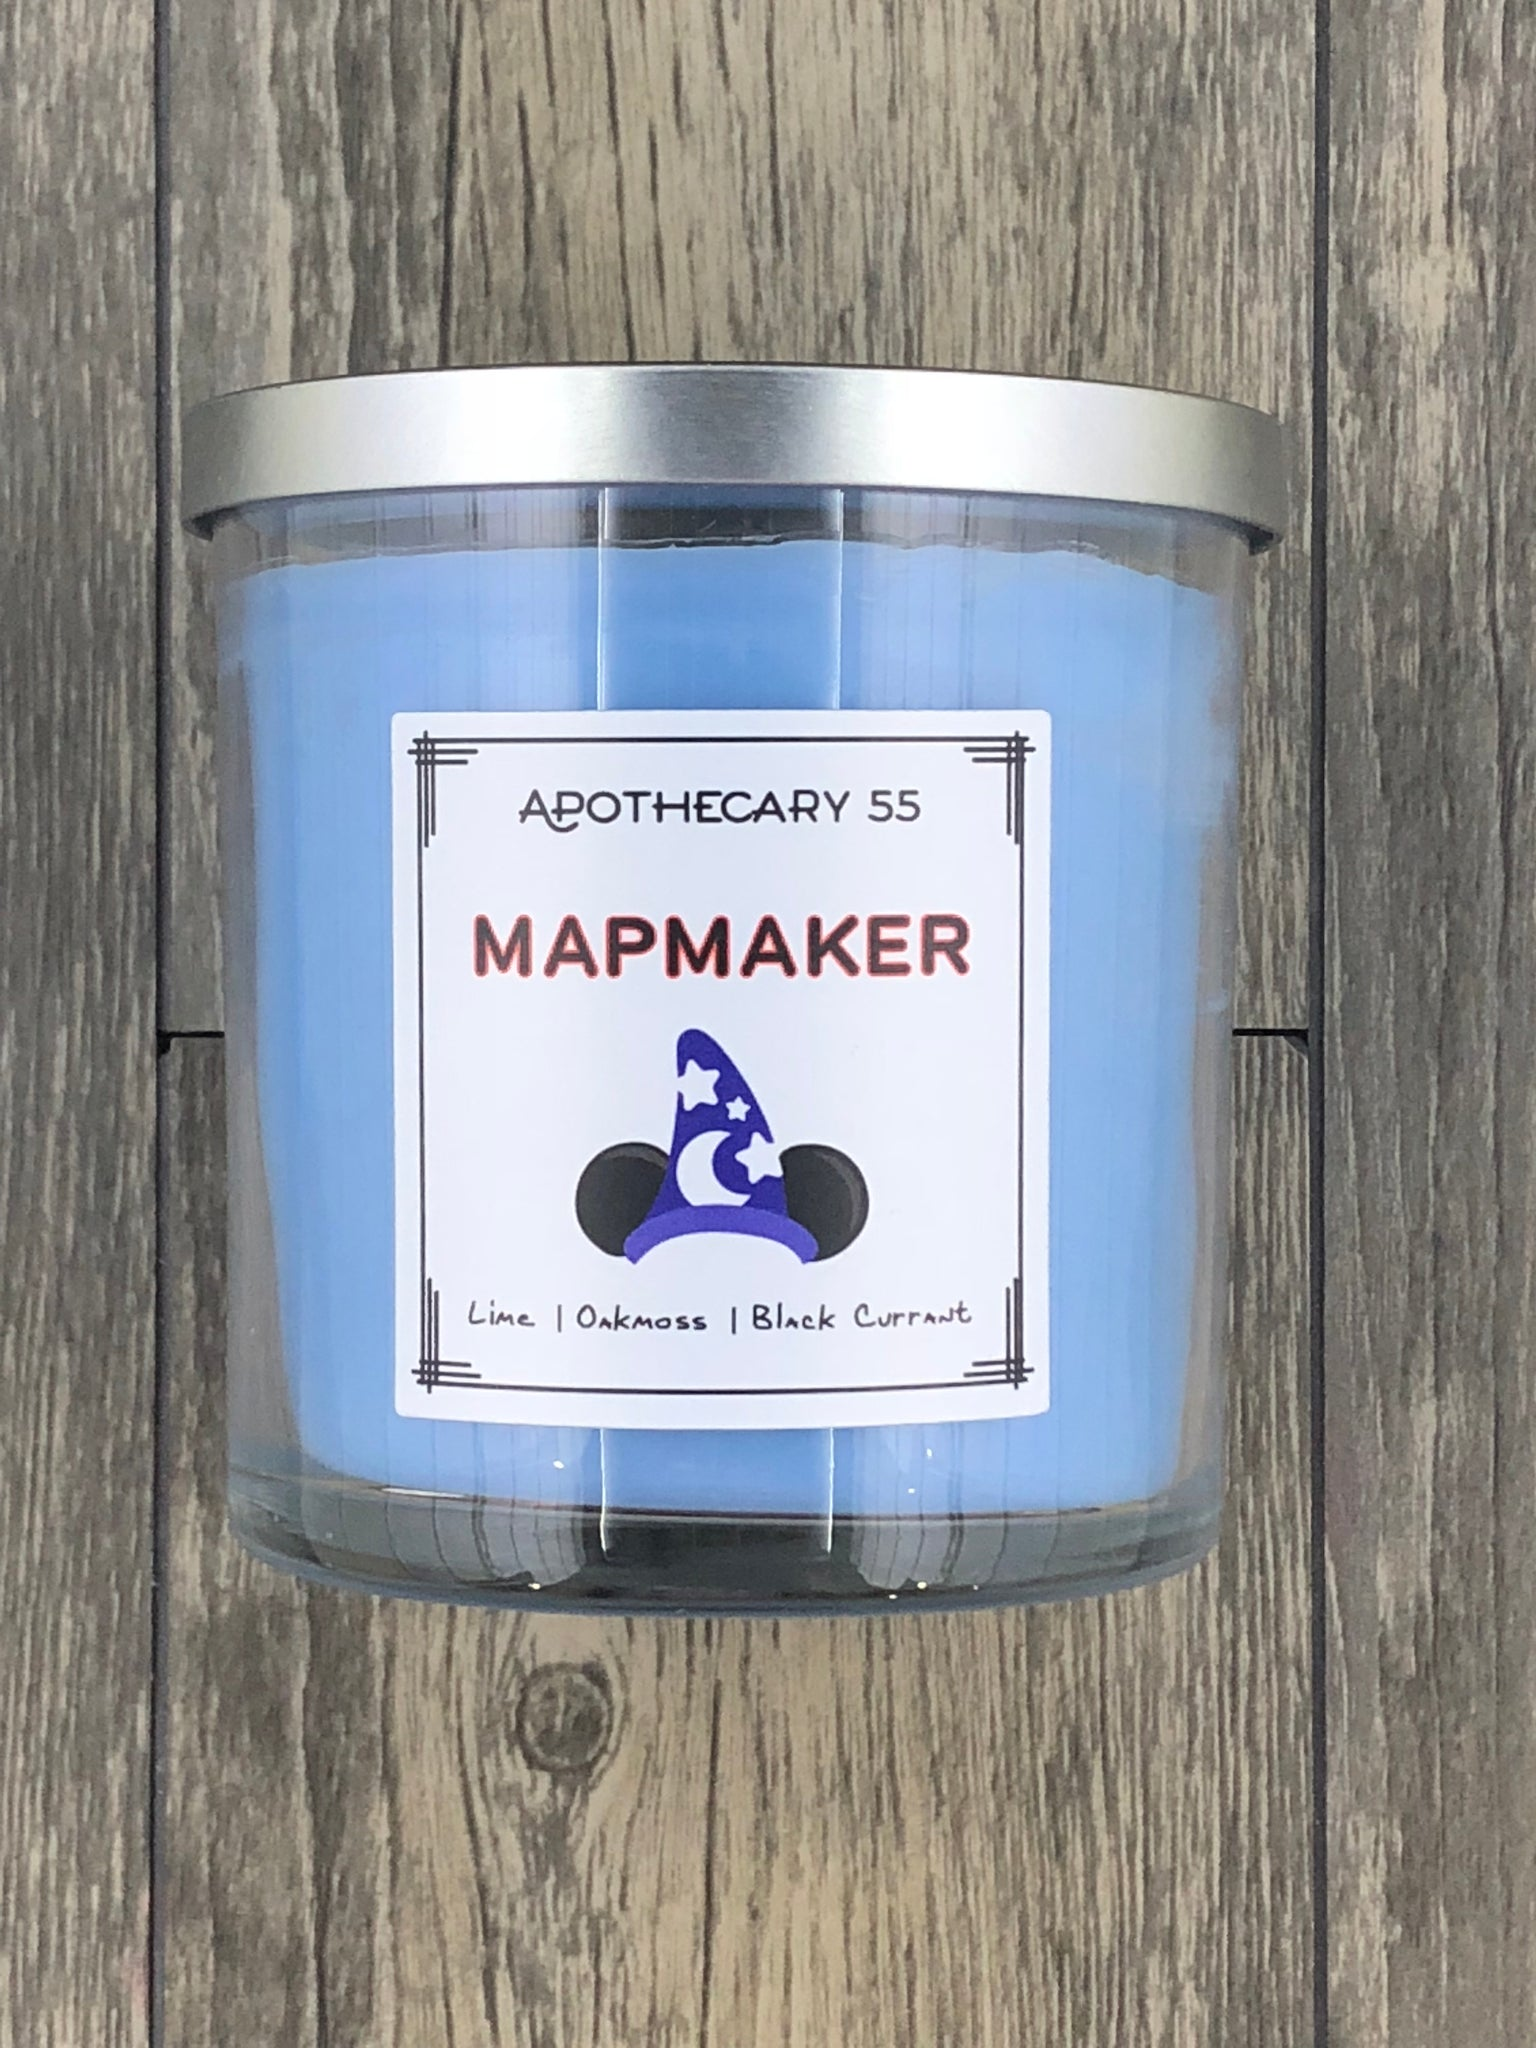 Mapmaker 9 oz. single wick candle